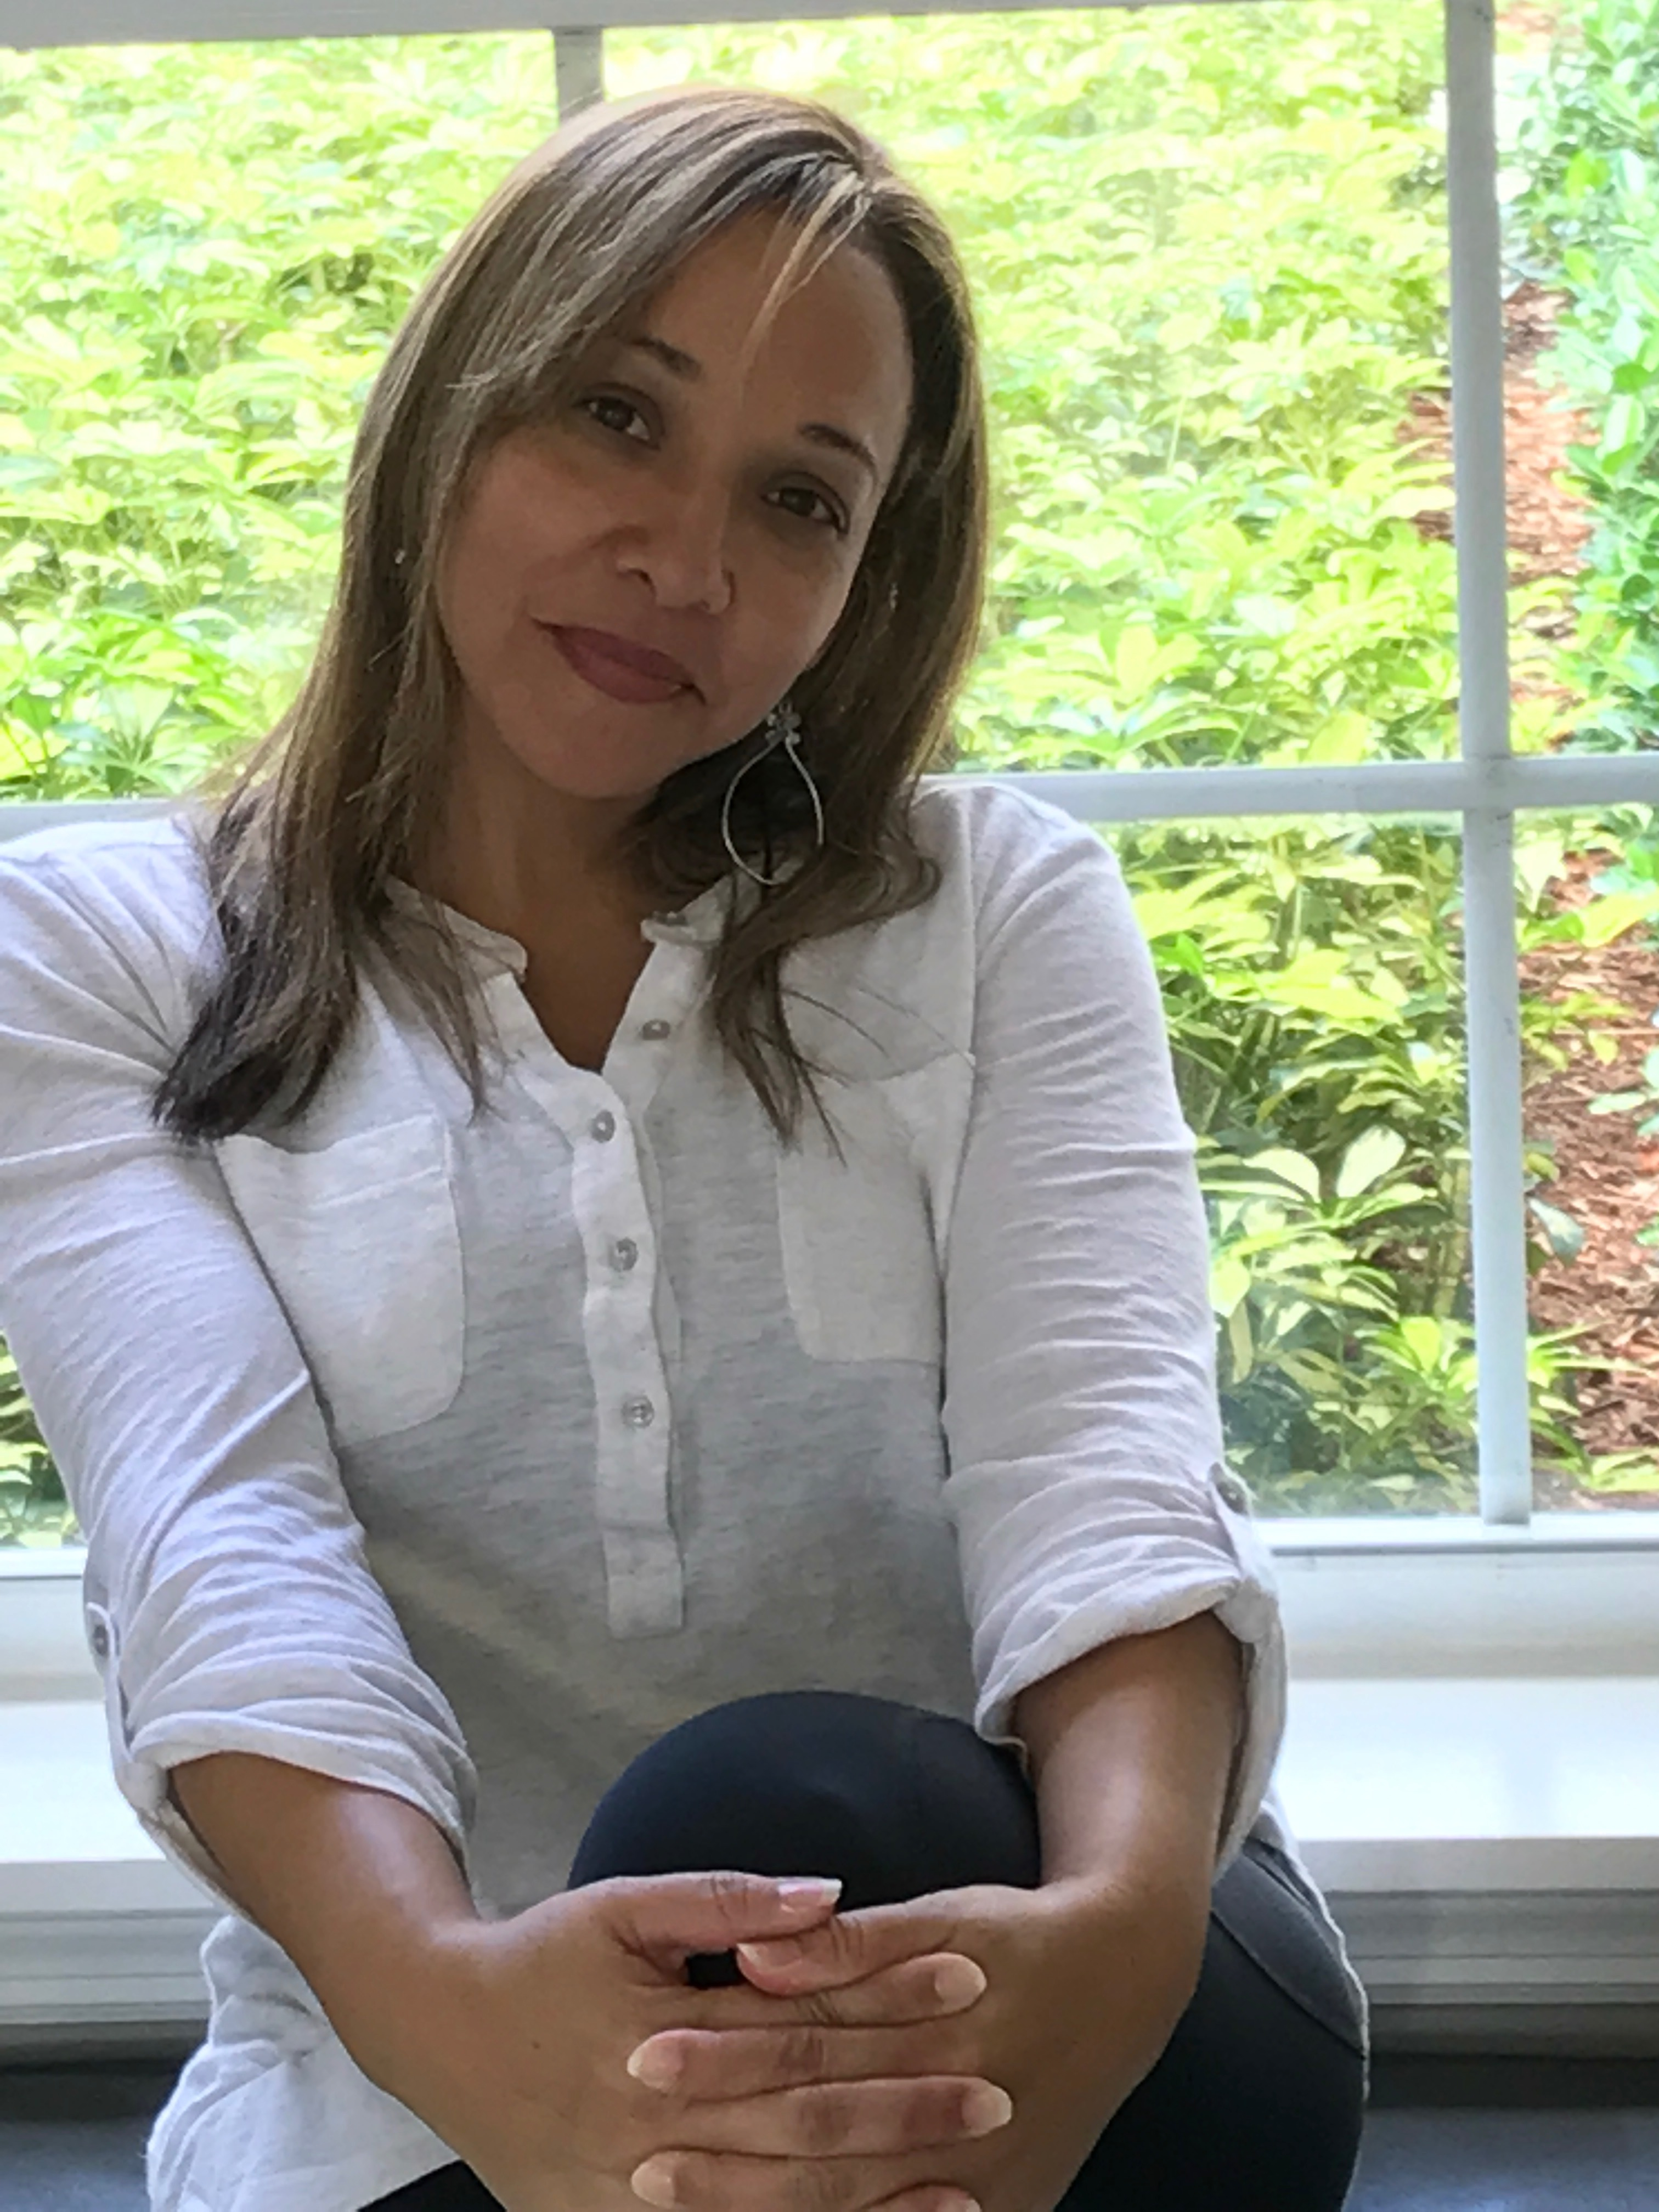 d0dcafd881fb1 Desiree is intent on Making Joy Contagious on her blog. Hear part of her  story about seeking joy even in incredible physical pain